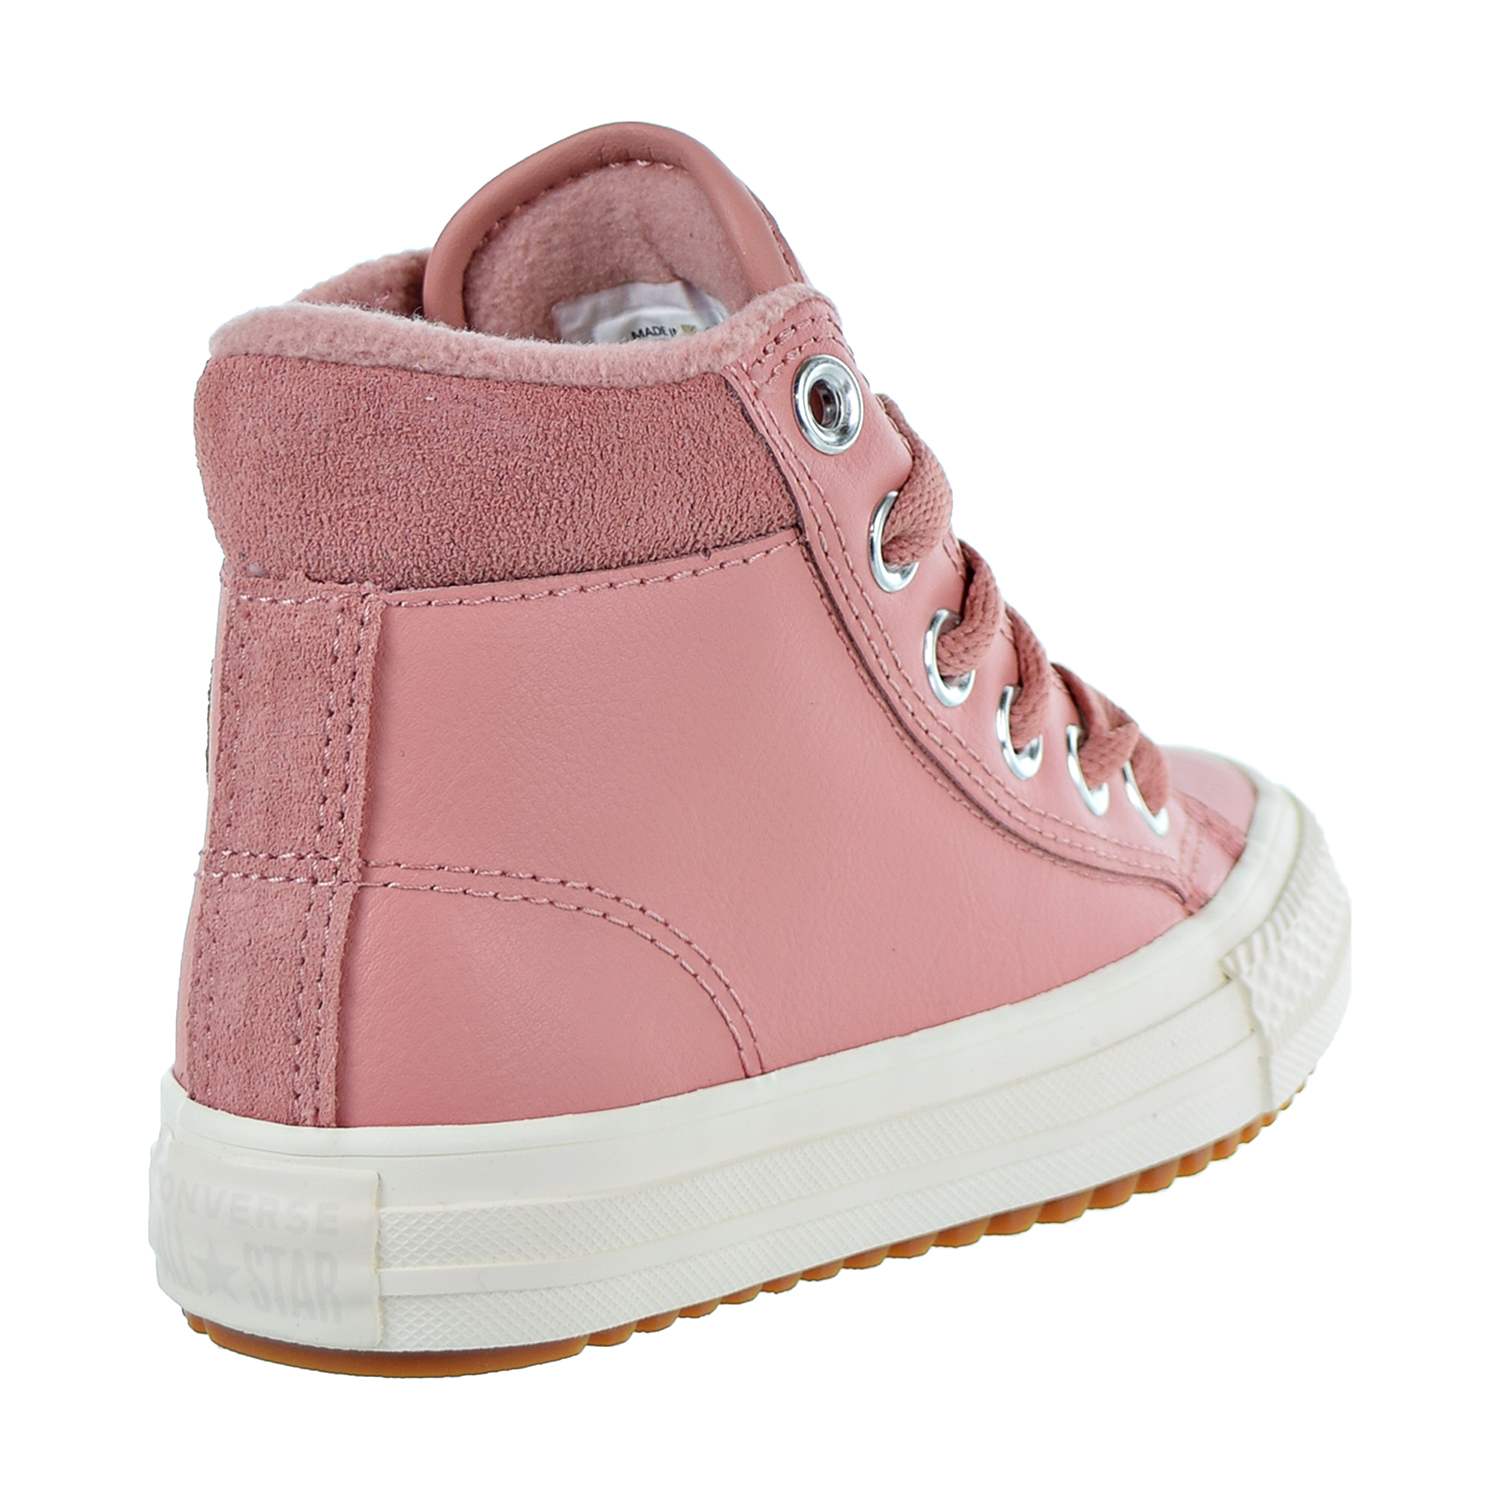 Converse Chuck Taylor All Star PC Boot Hi Kids Shoes Pink-Burnt Caramel 661905c